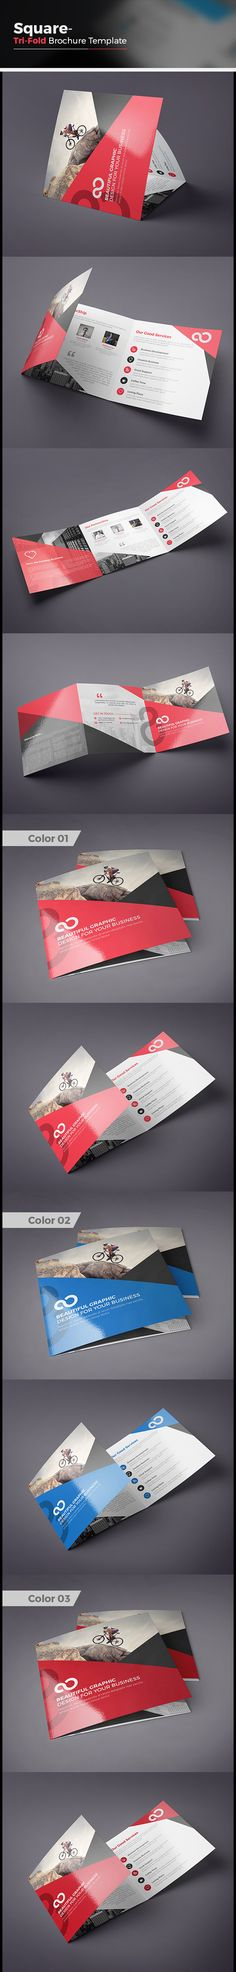 Square Tri fold Business Brochure on Behance